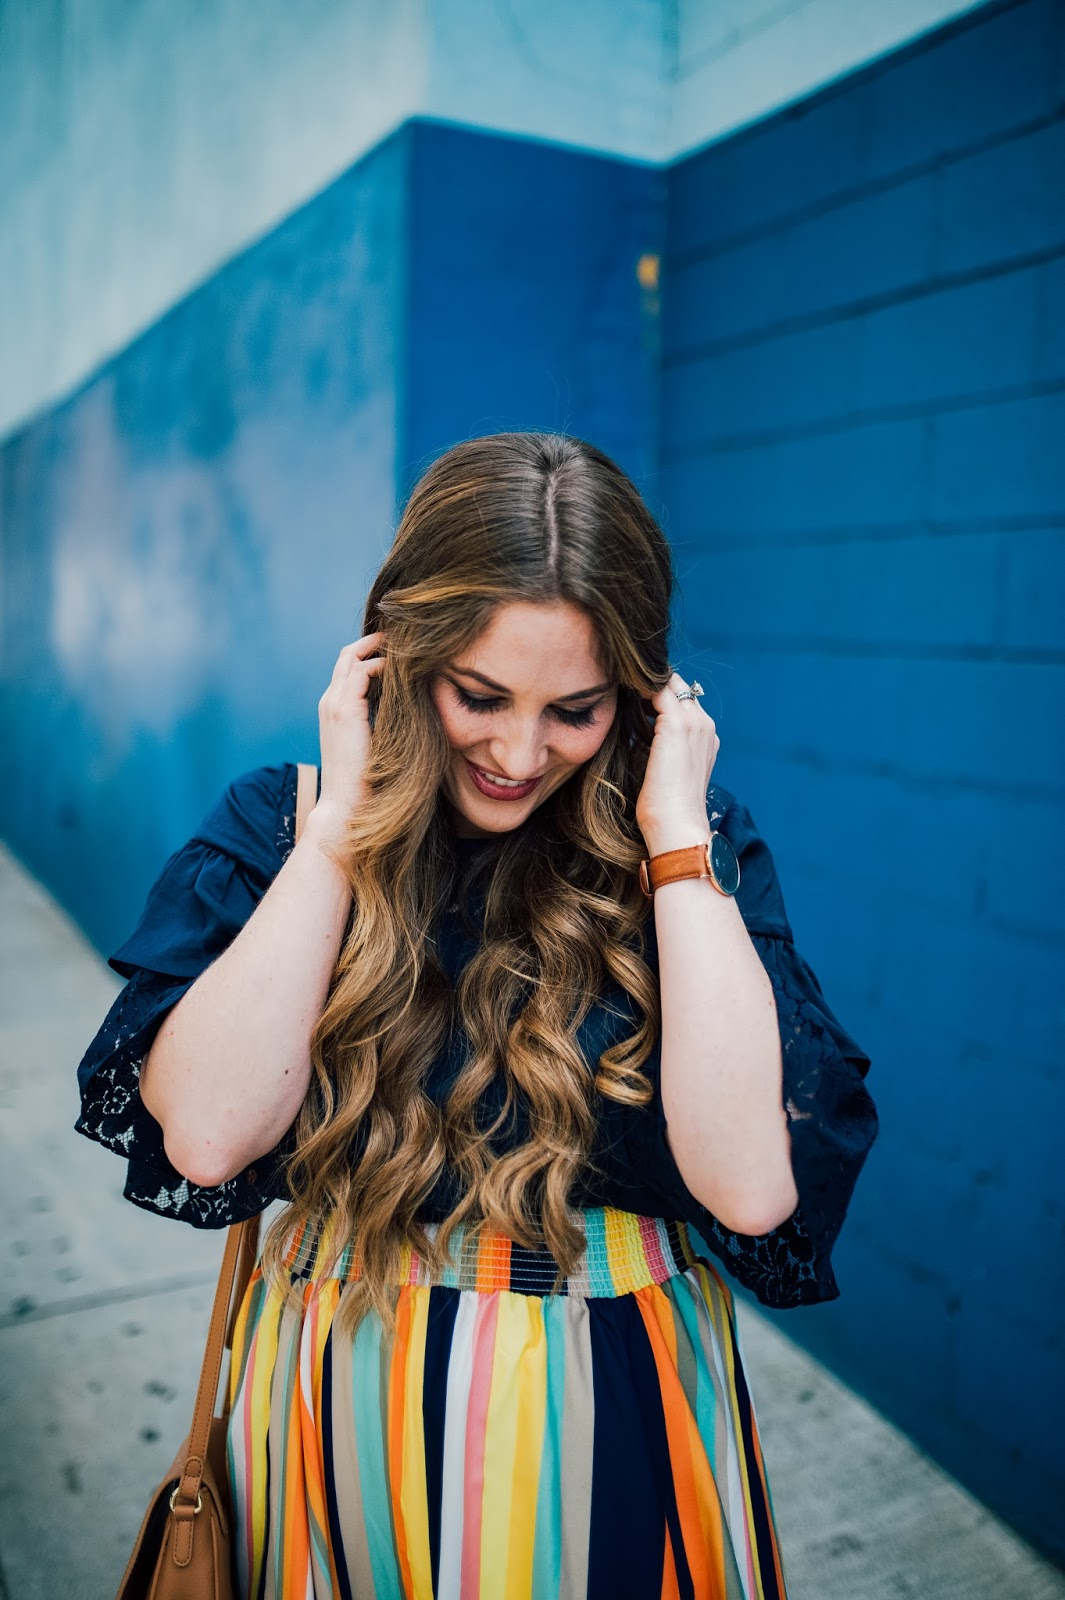 Trend Spin Linkup - Colorful Fashion by fashion blogger Laura of Walking in Memphis in High Heels